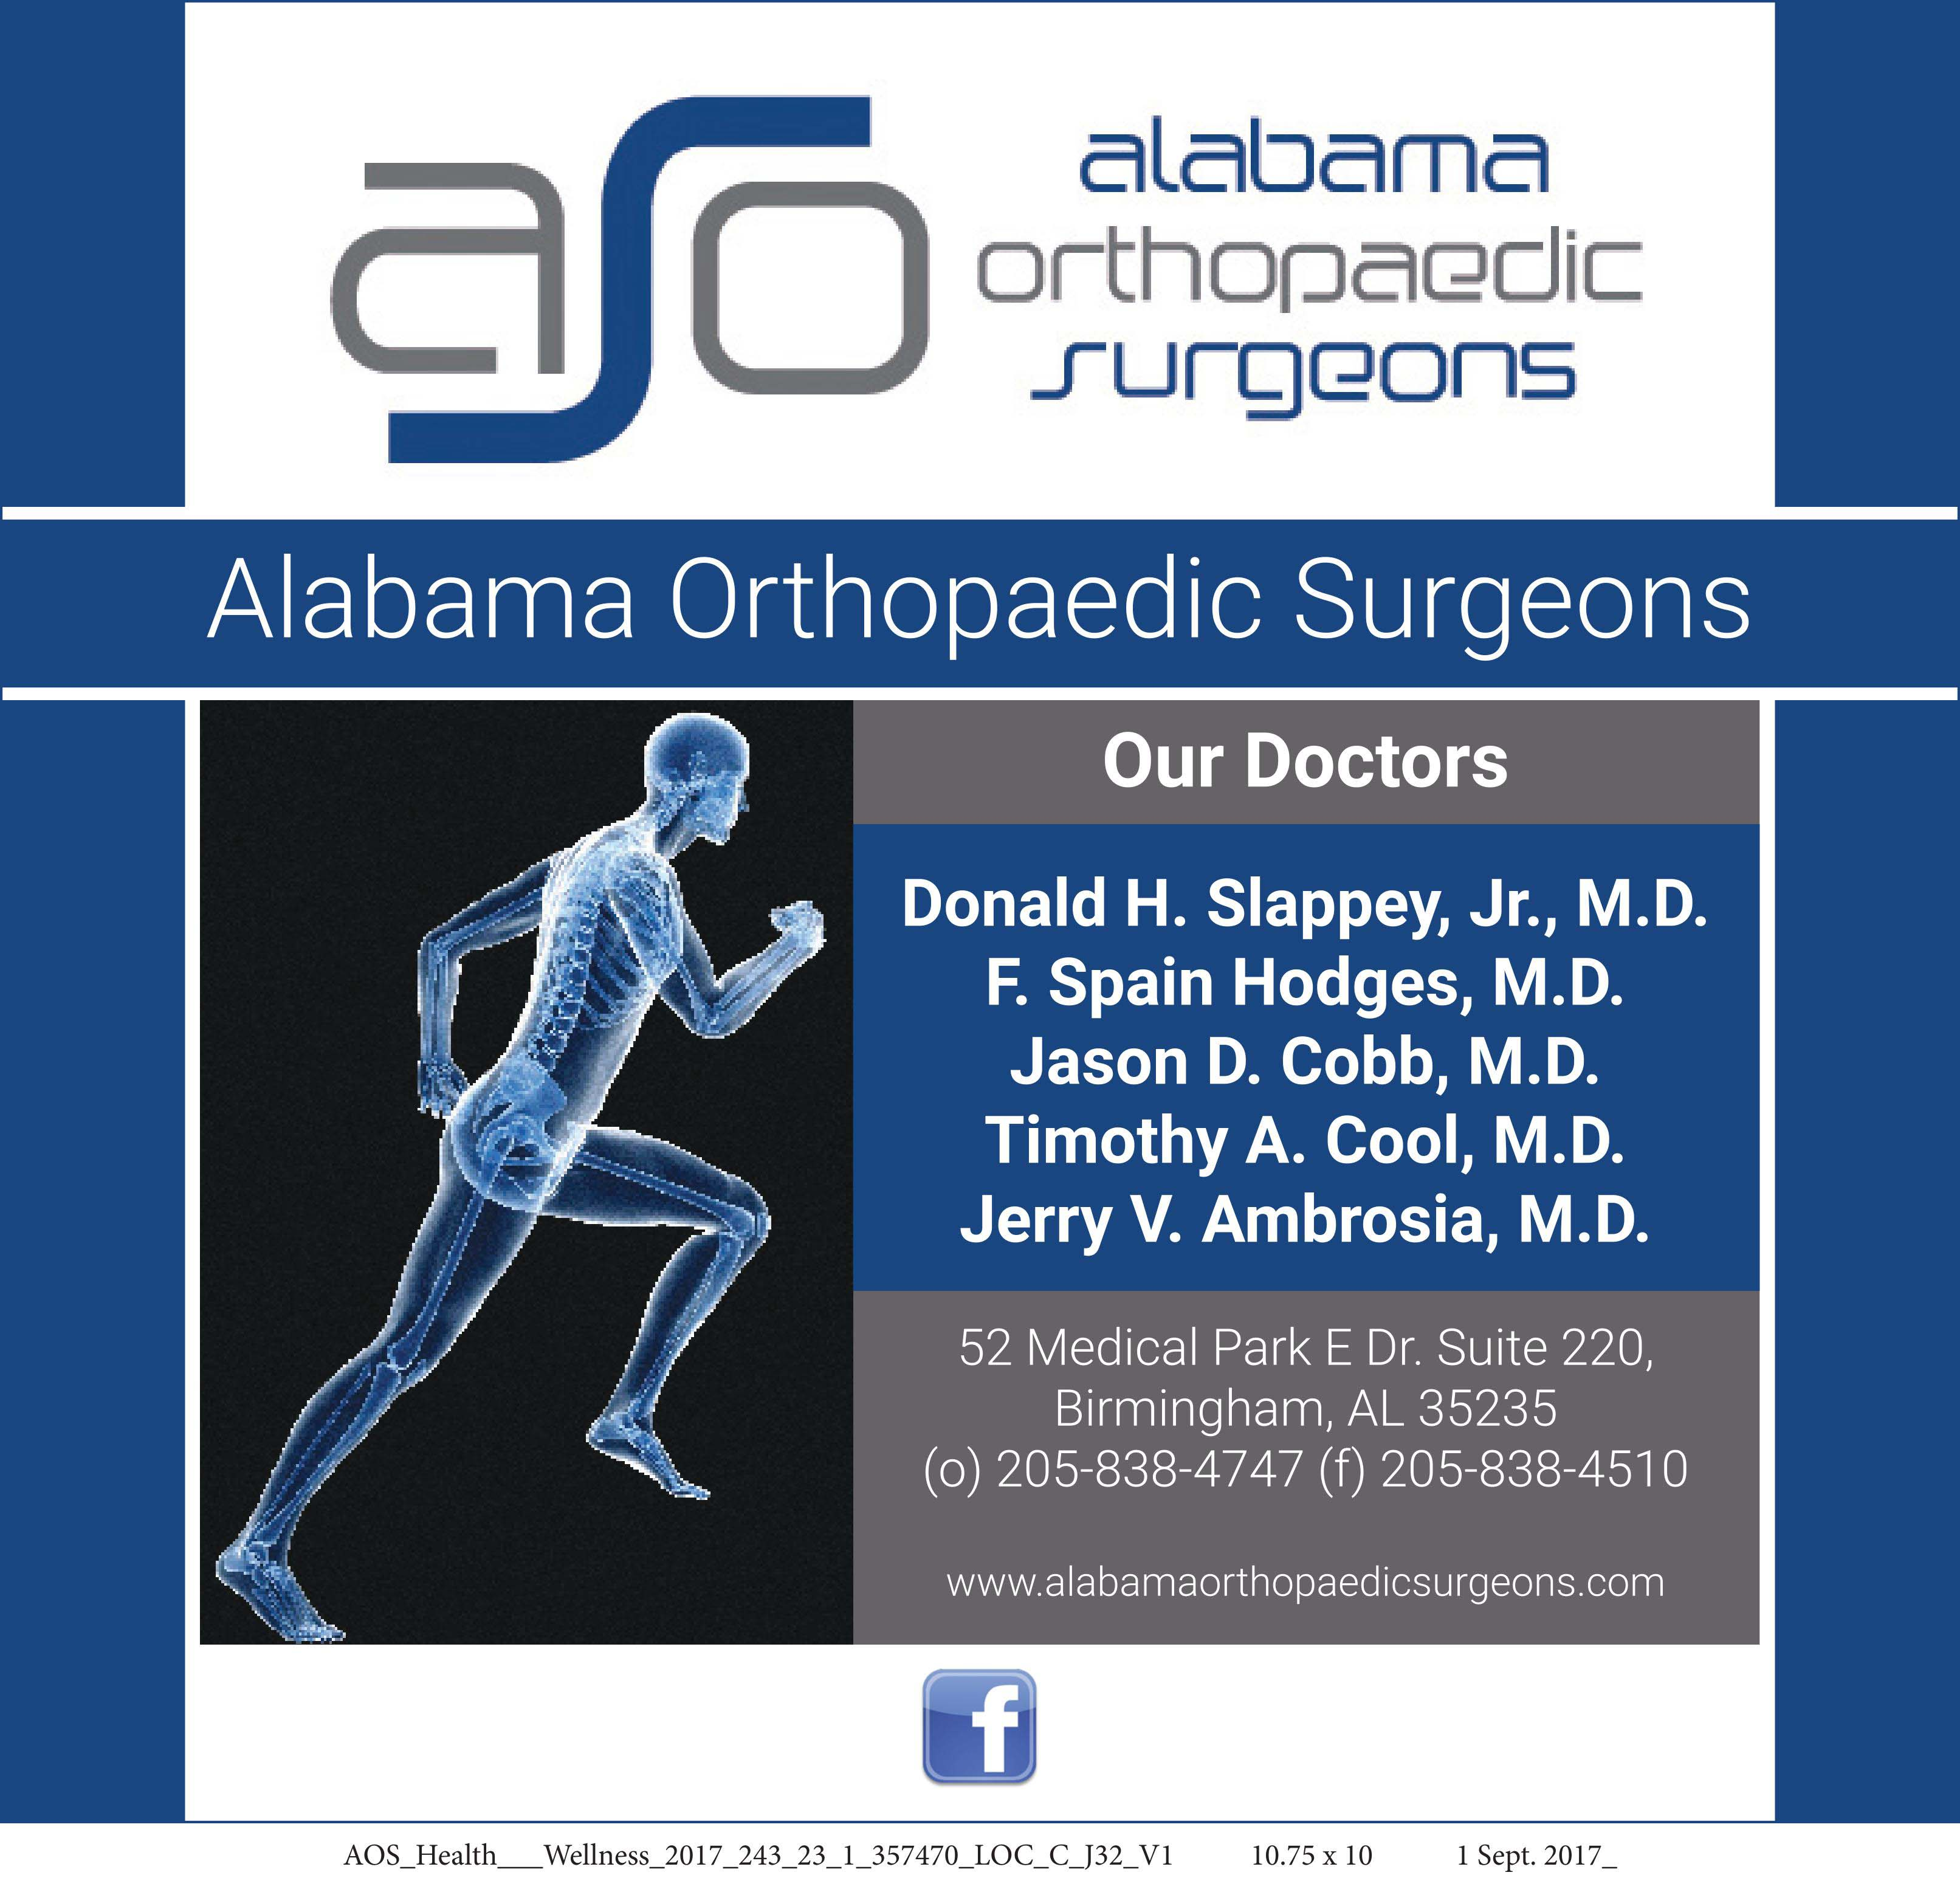 Alabama Orthopaedic Surgeons devoted to providing high-quality patient care